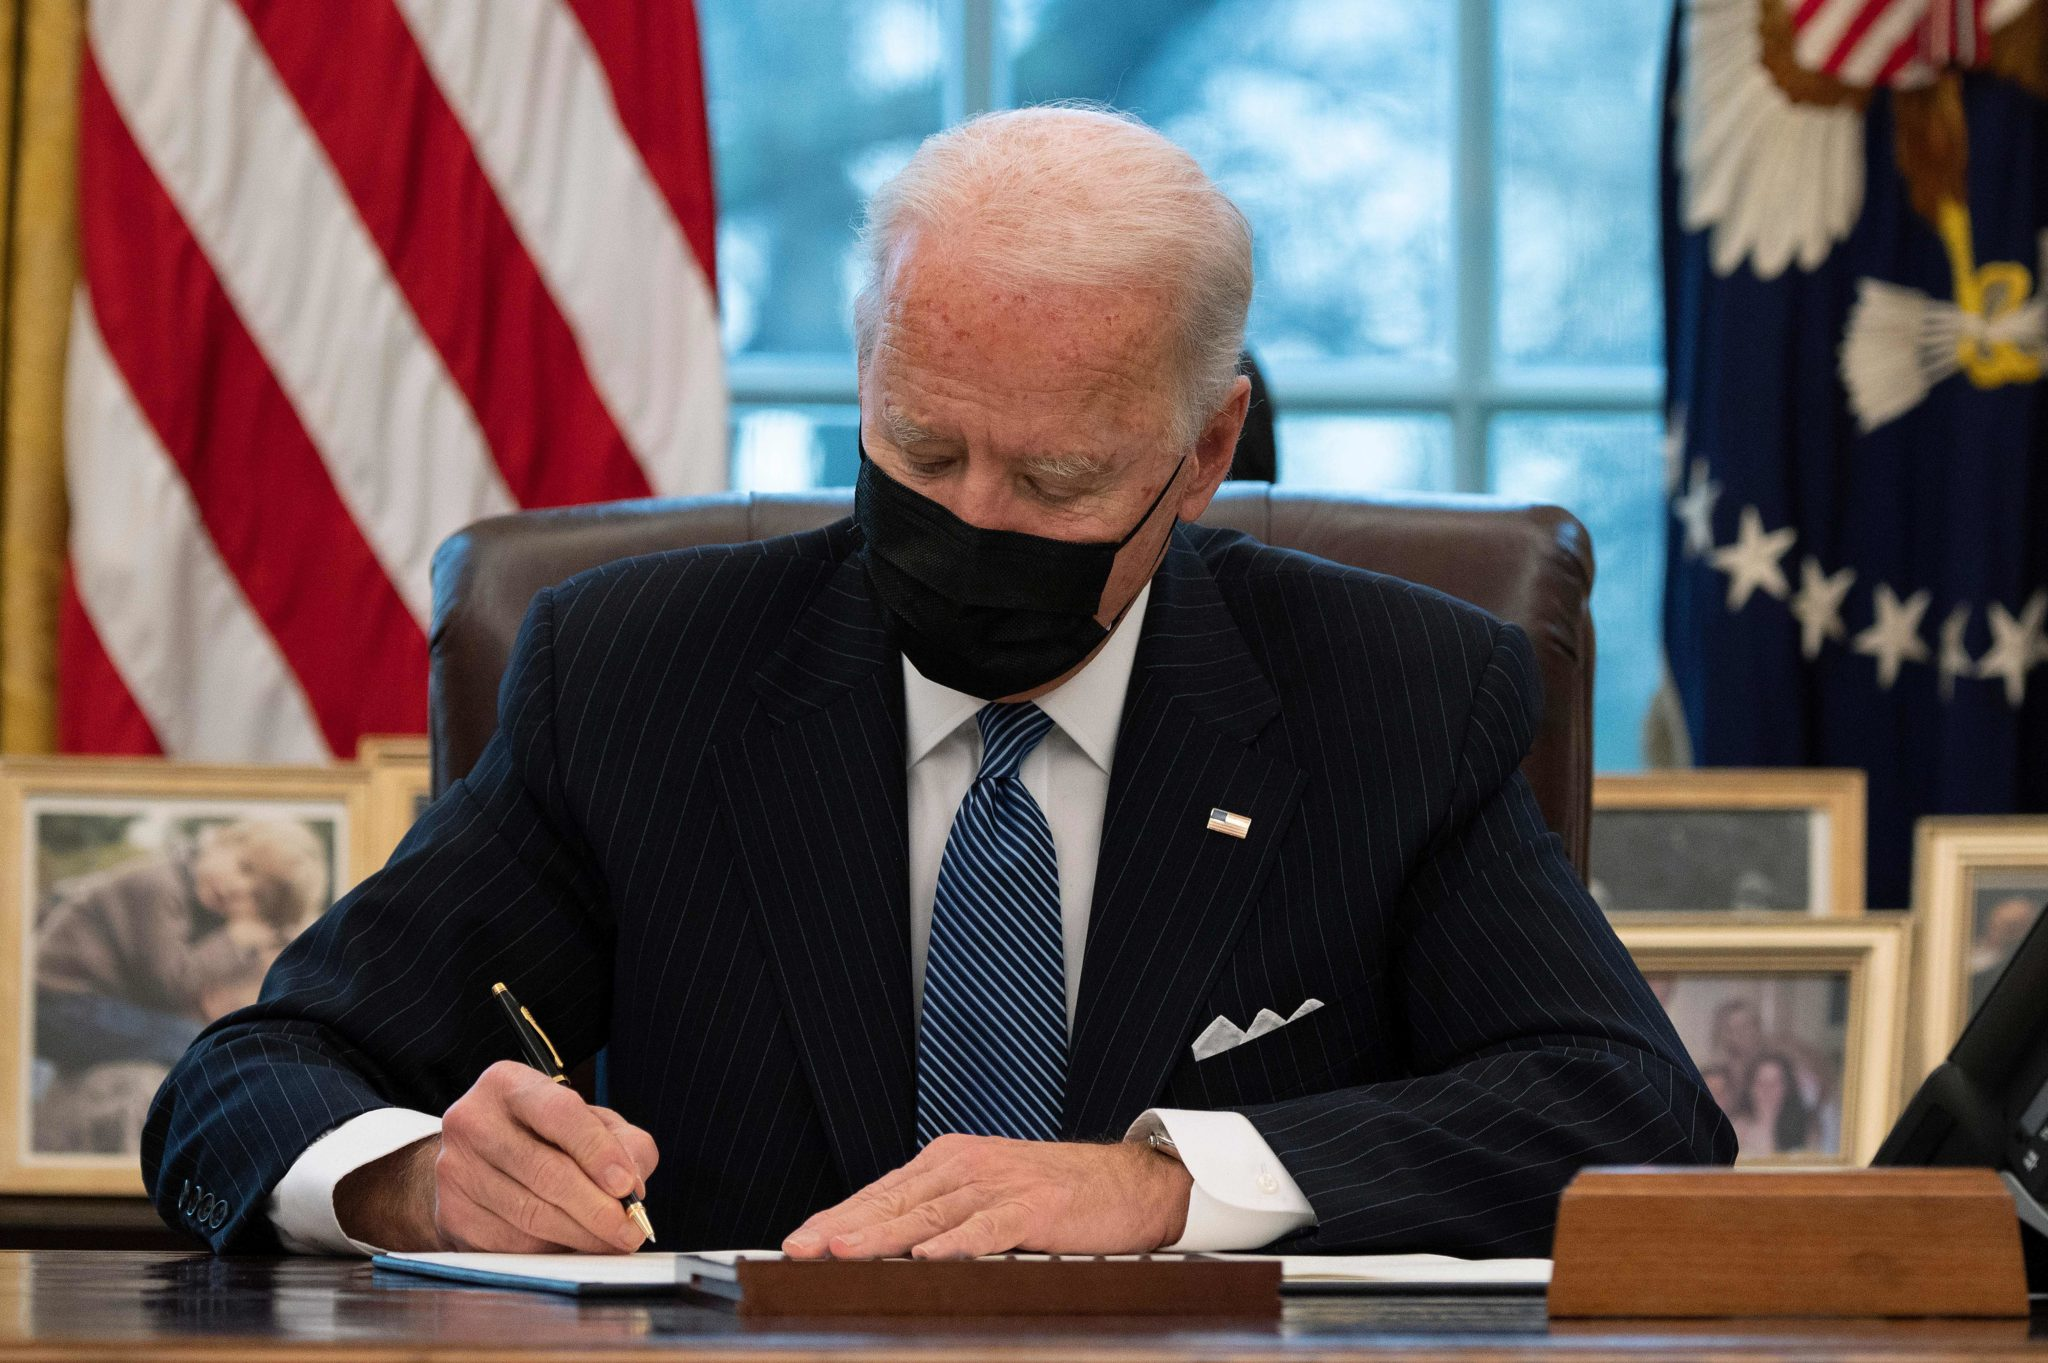 Republicans angry: US President Joe Biden signs an executive order reversing a Trump era ban on transgender people serving in the military